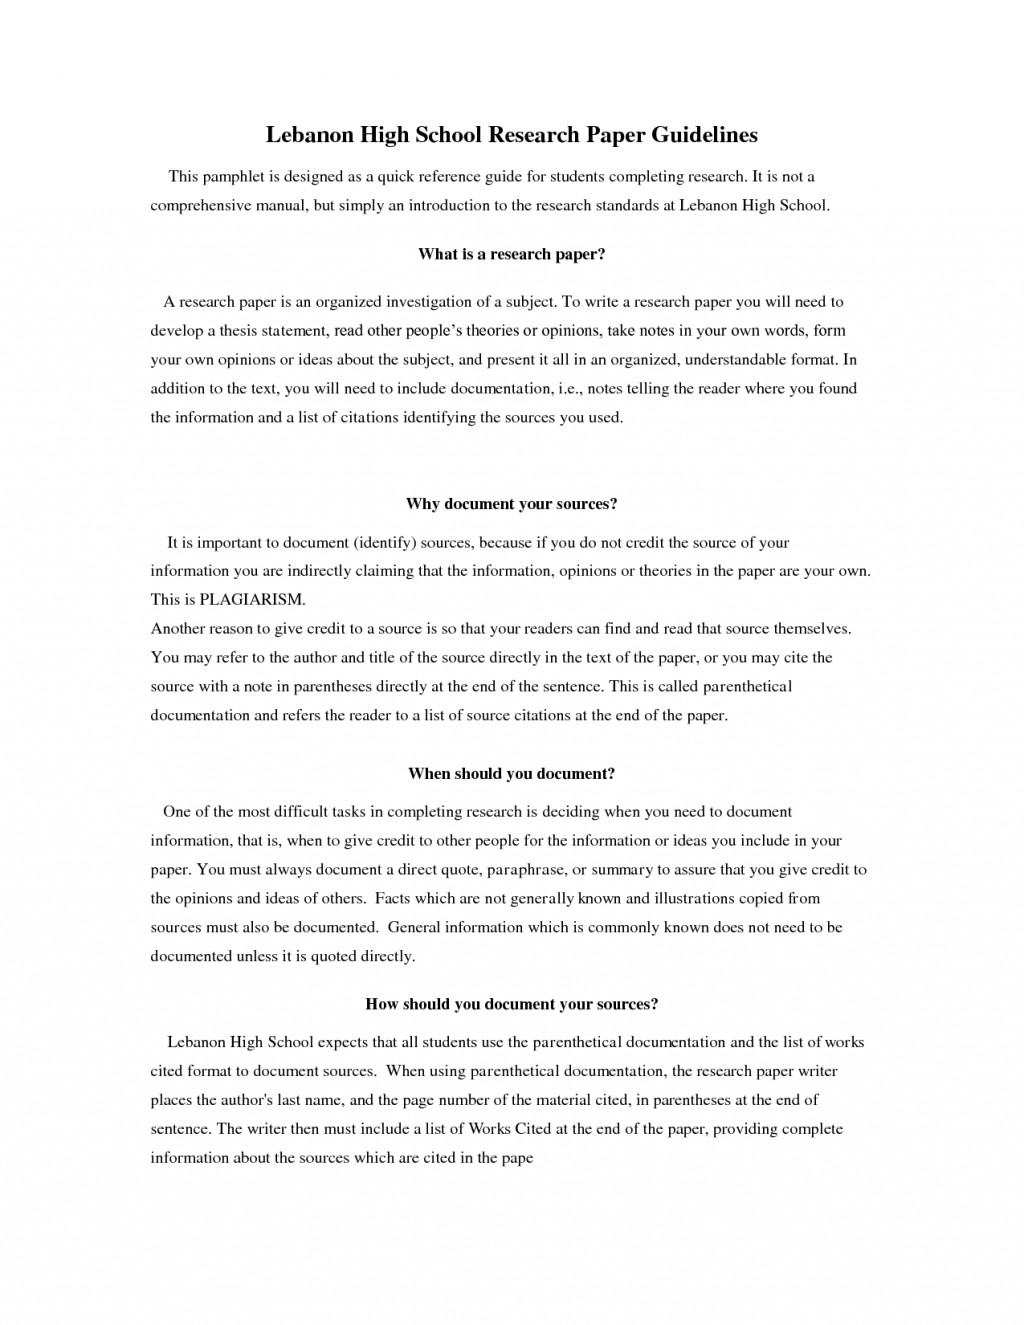 024 Research Paper Good Singular Topic Topics For High School 2019 Easy Reddit Large